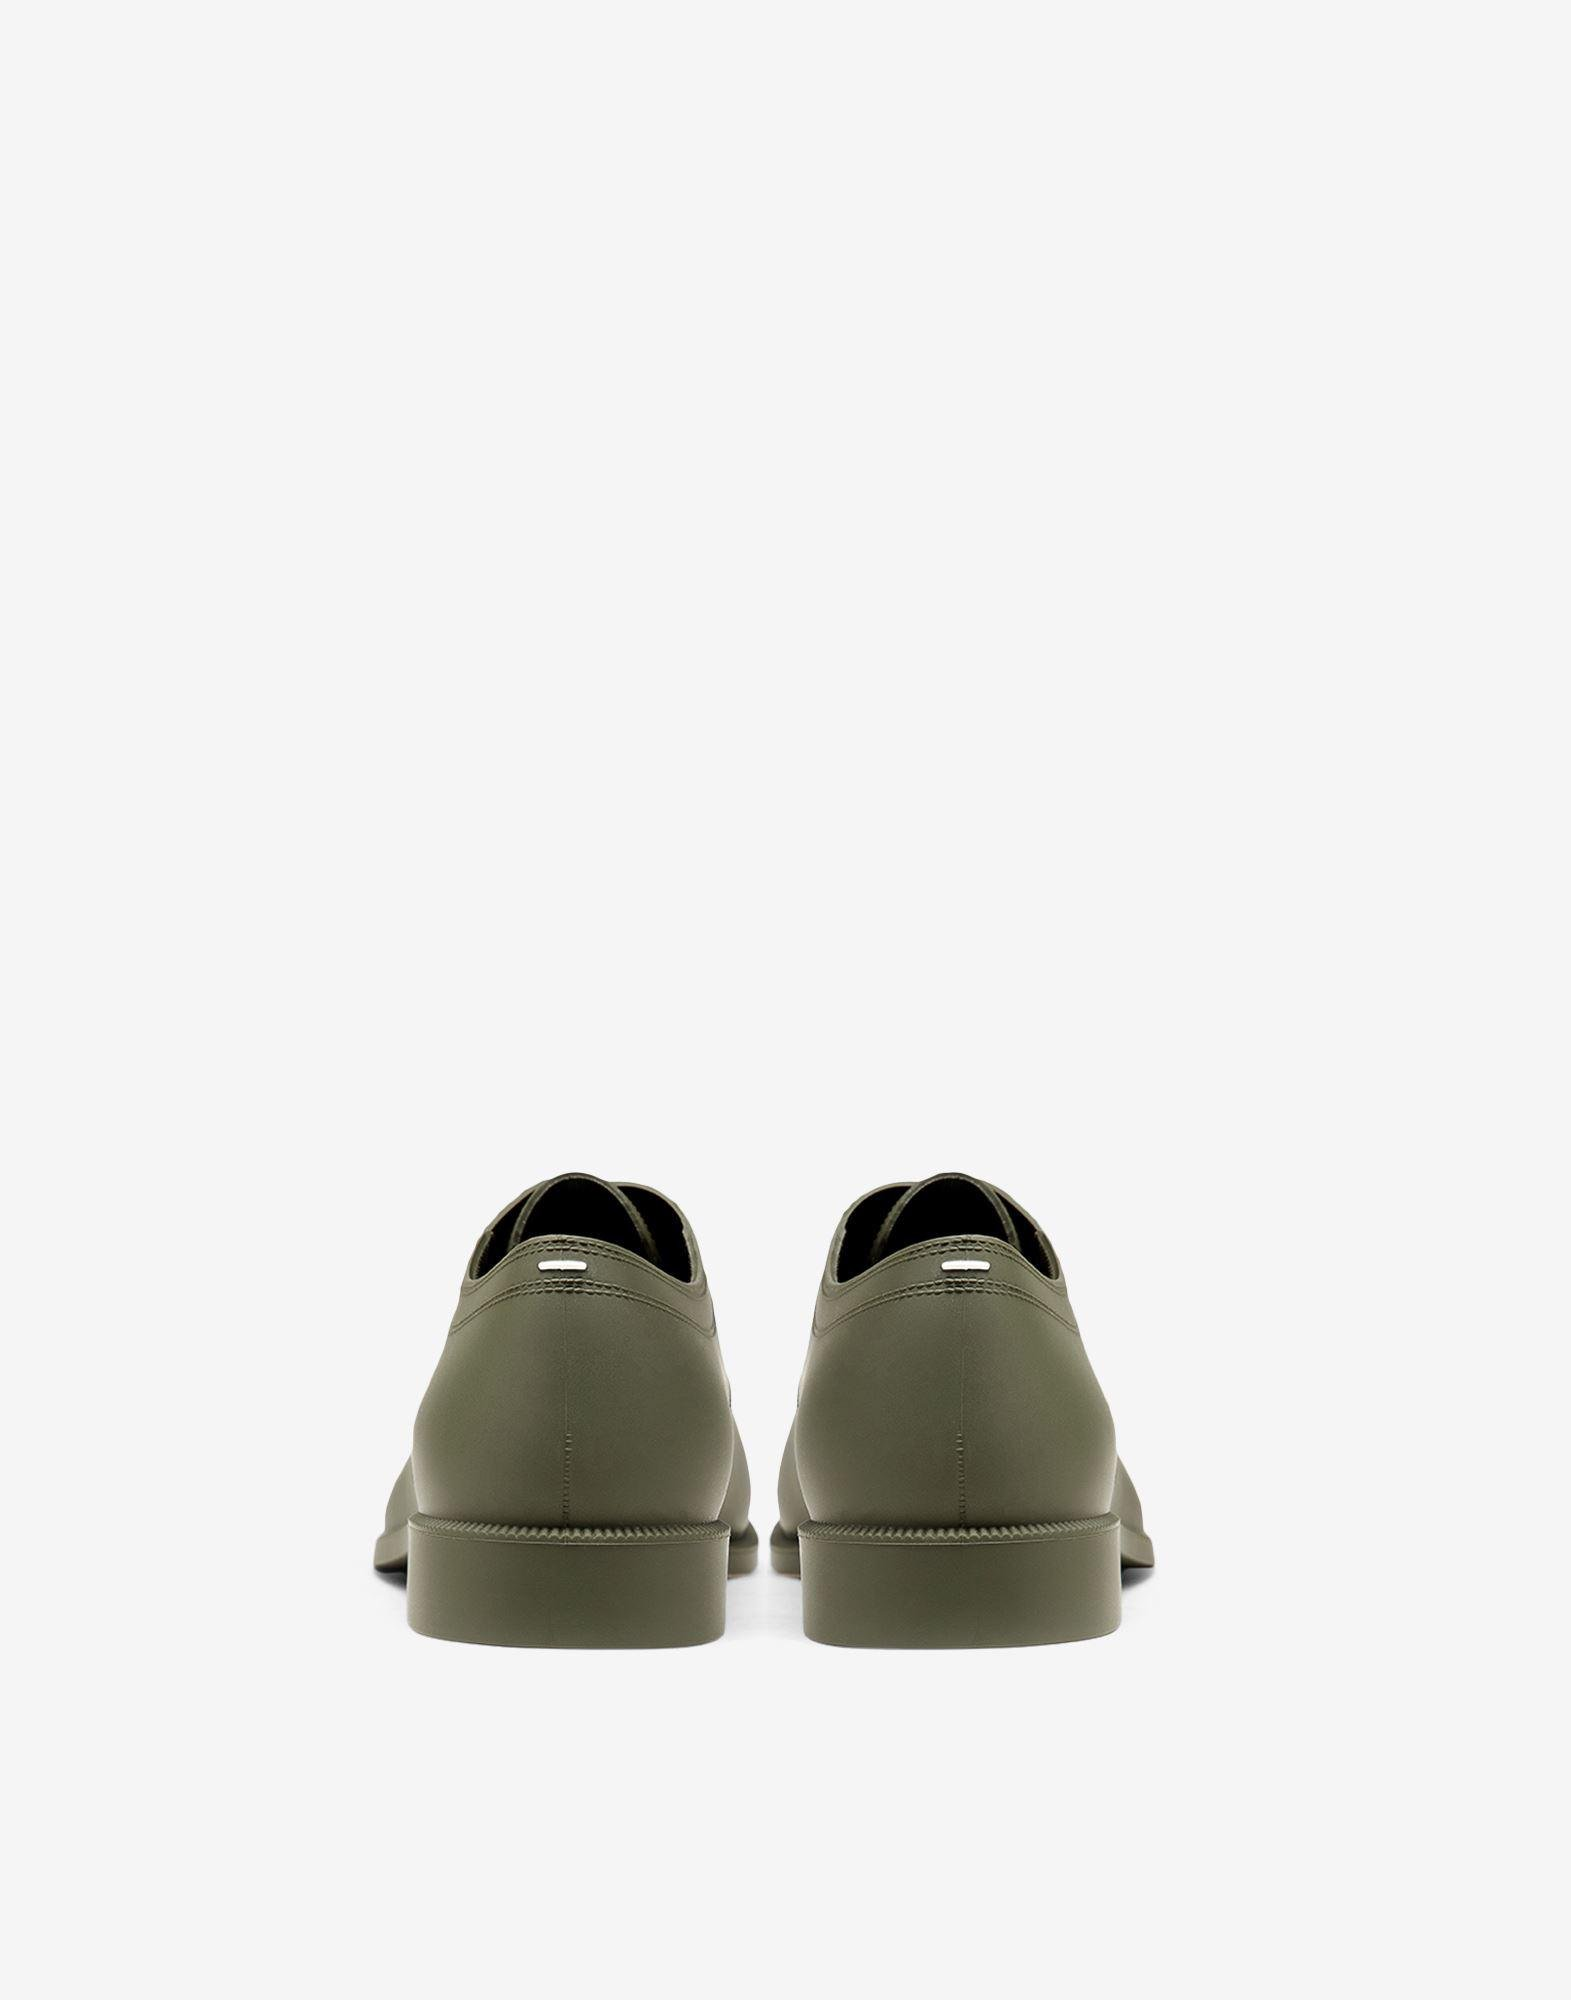 Tabi lace-up shoes 2